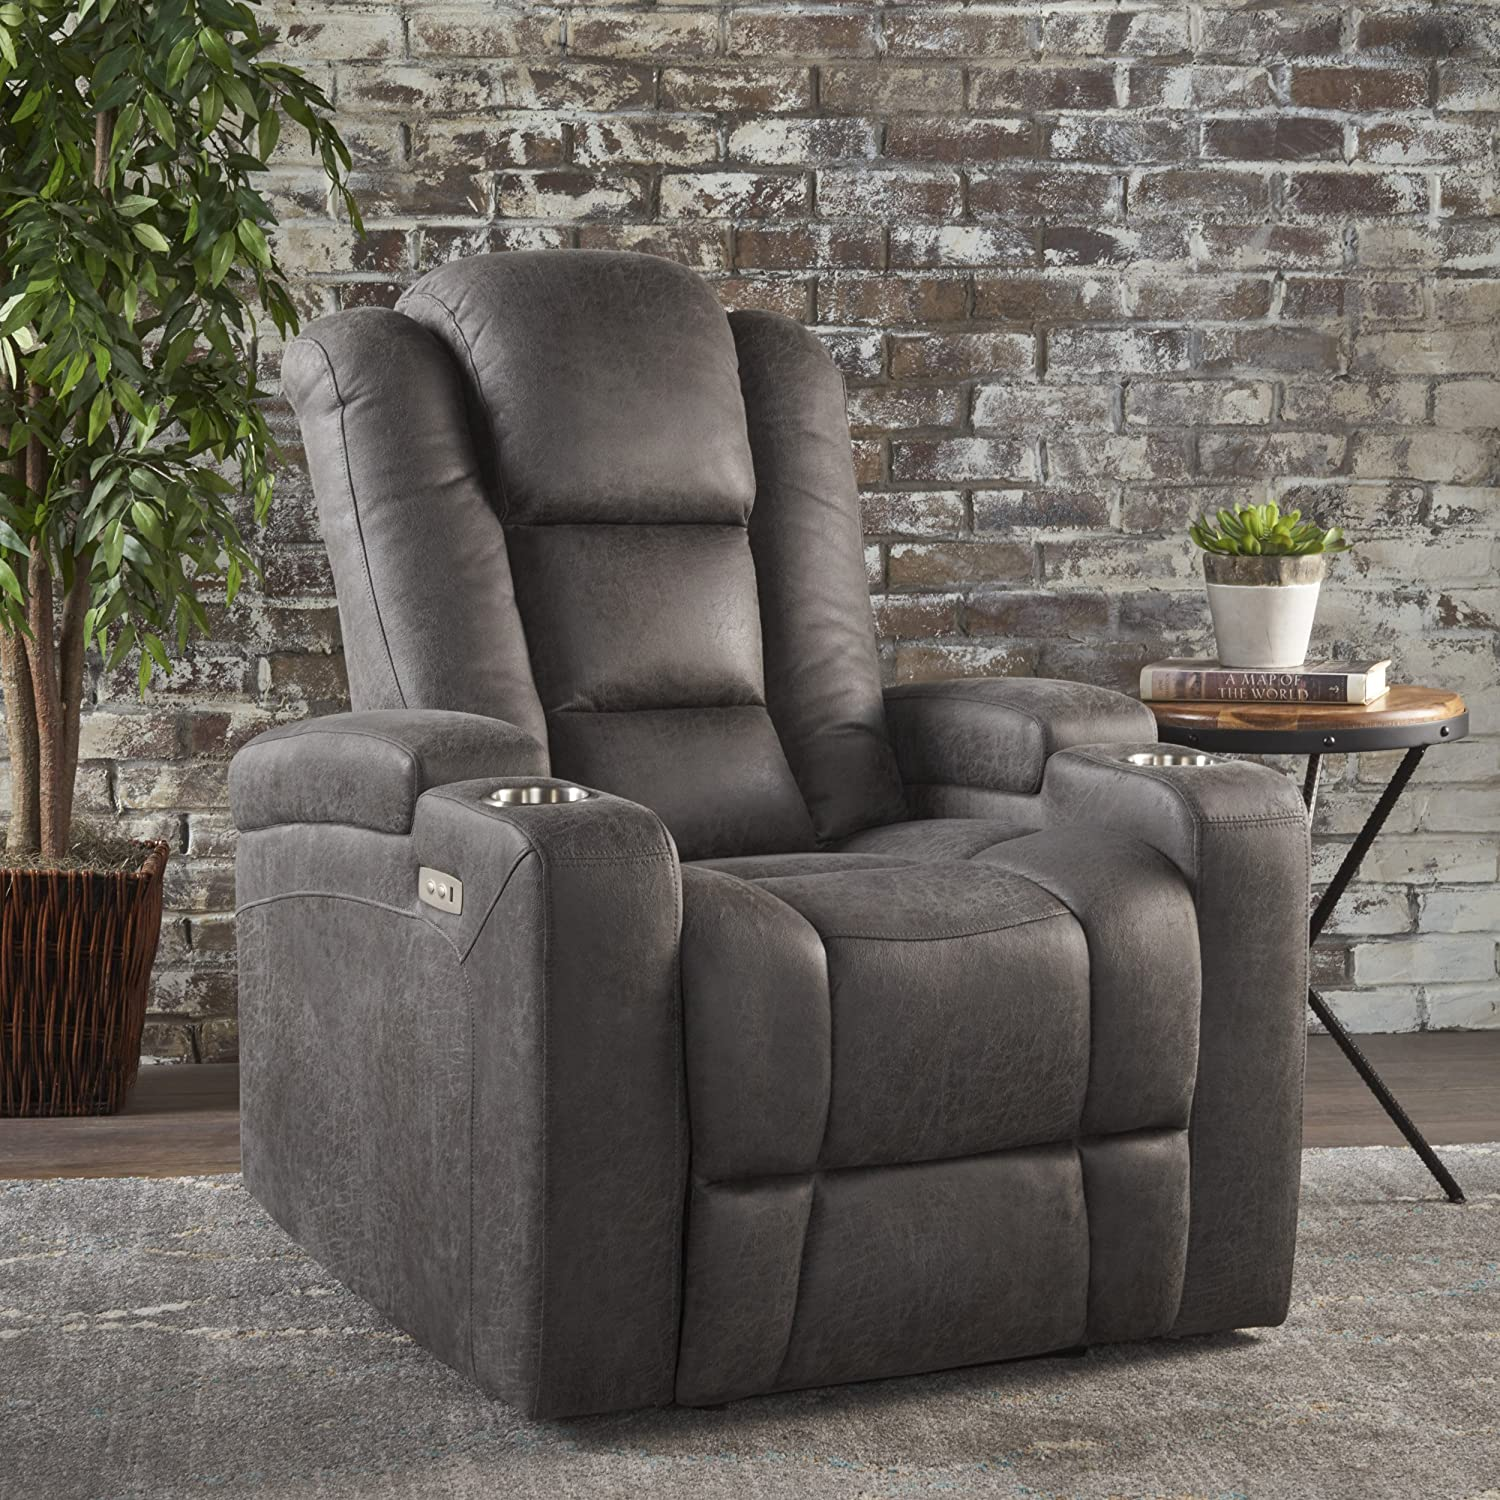 Stupendous Christopher Knight Home Everette Power Motion Recliner Slate Pdpeps Interior Chair Design Pdpepsorg